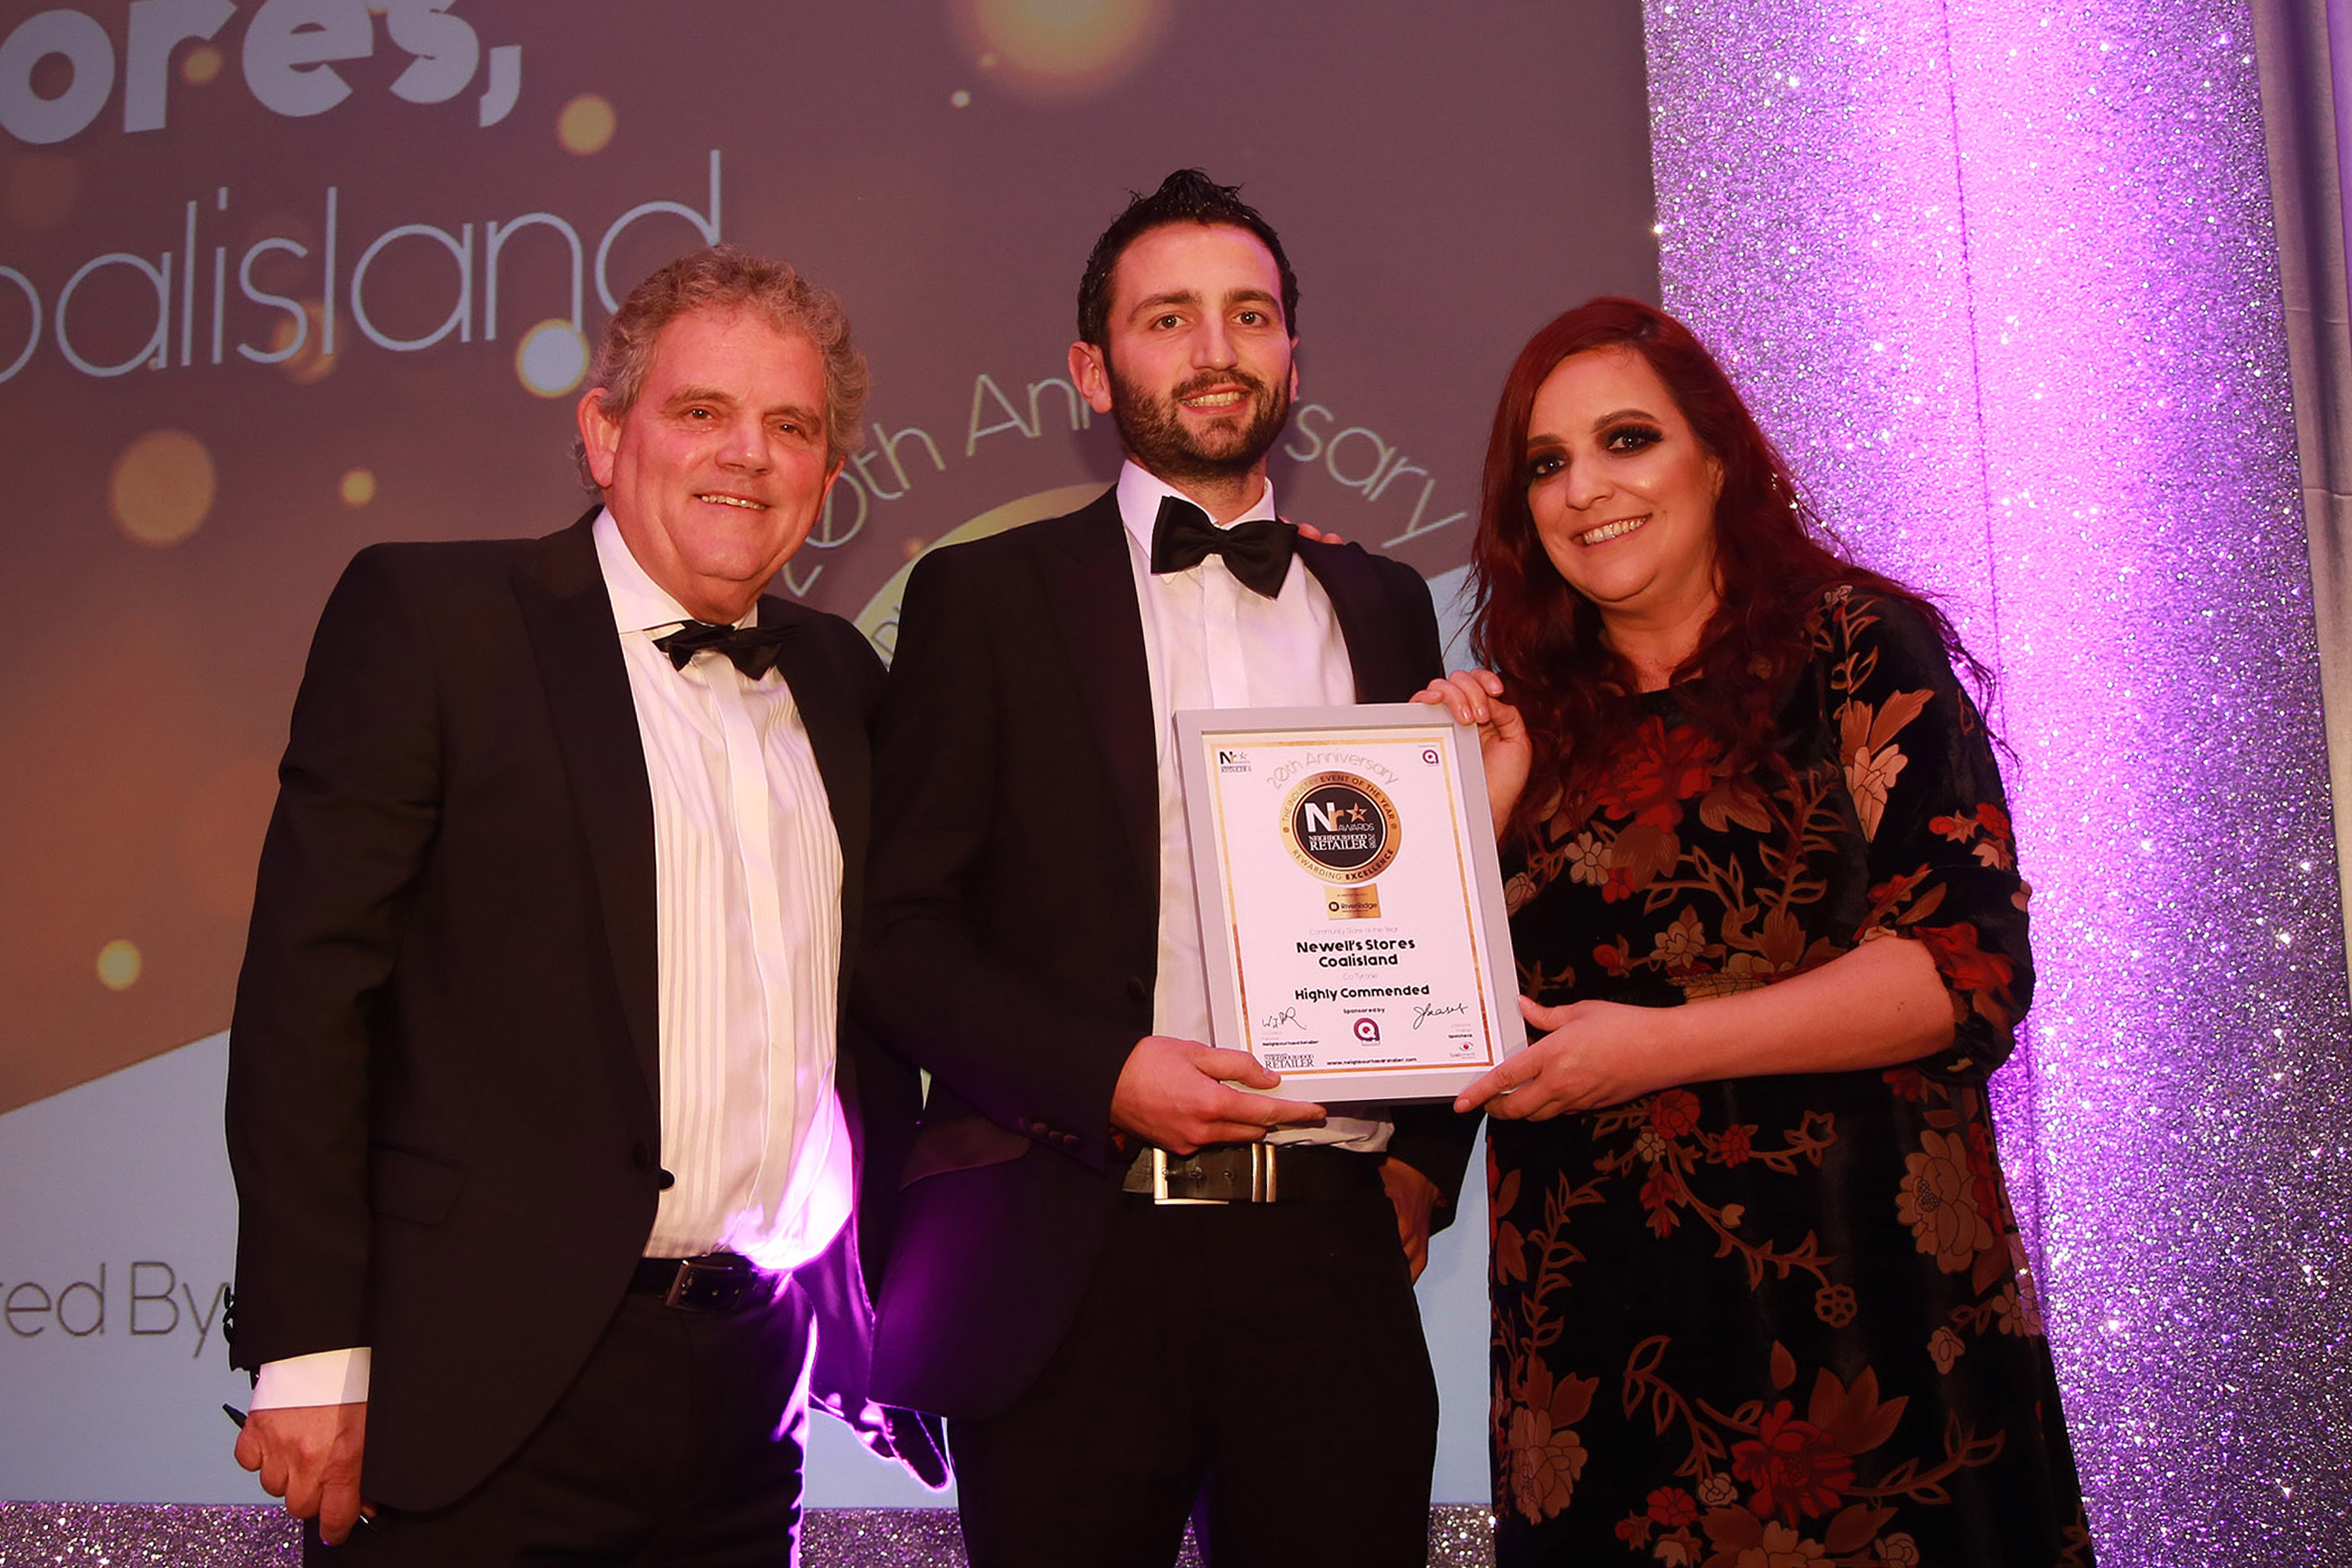 Neighbourhood Retailer Awards - Community Store of the Year highly commended